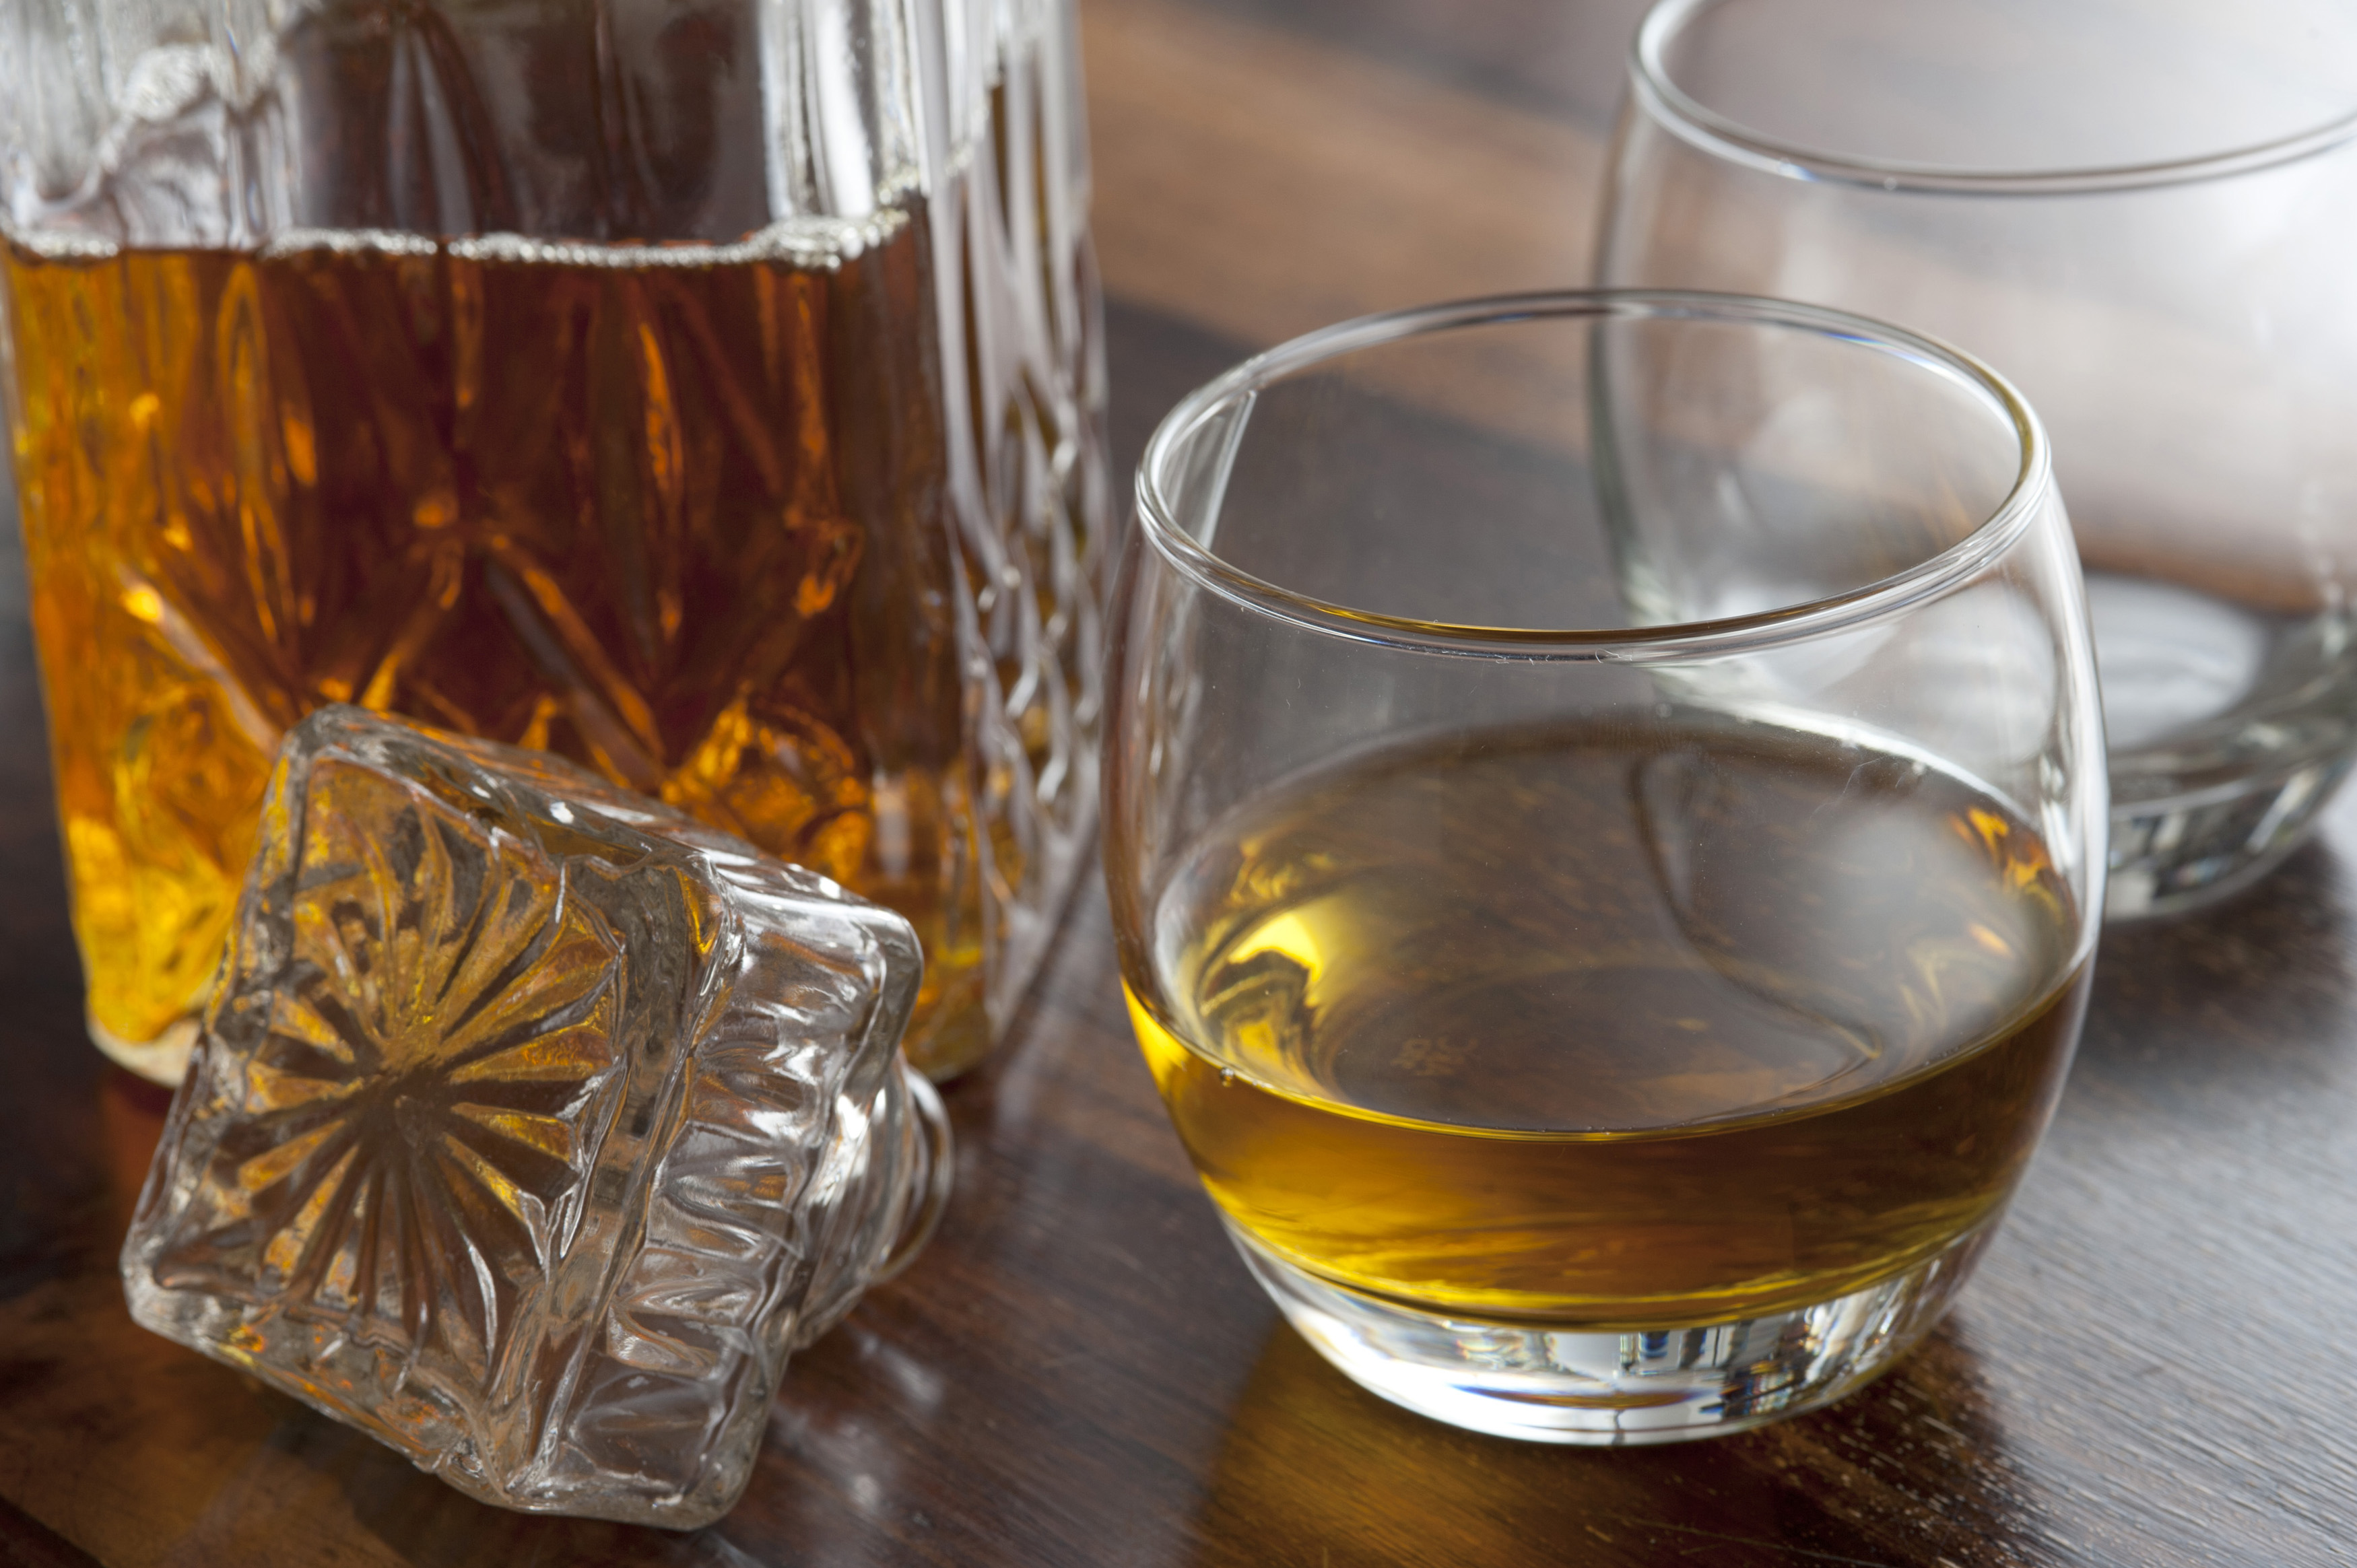 A Whiskey Glass And Decanter Stopper On A Wooden Table